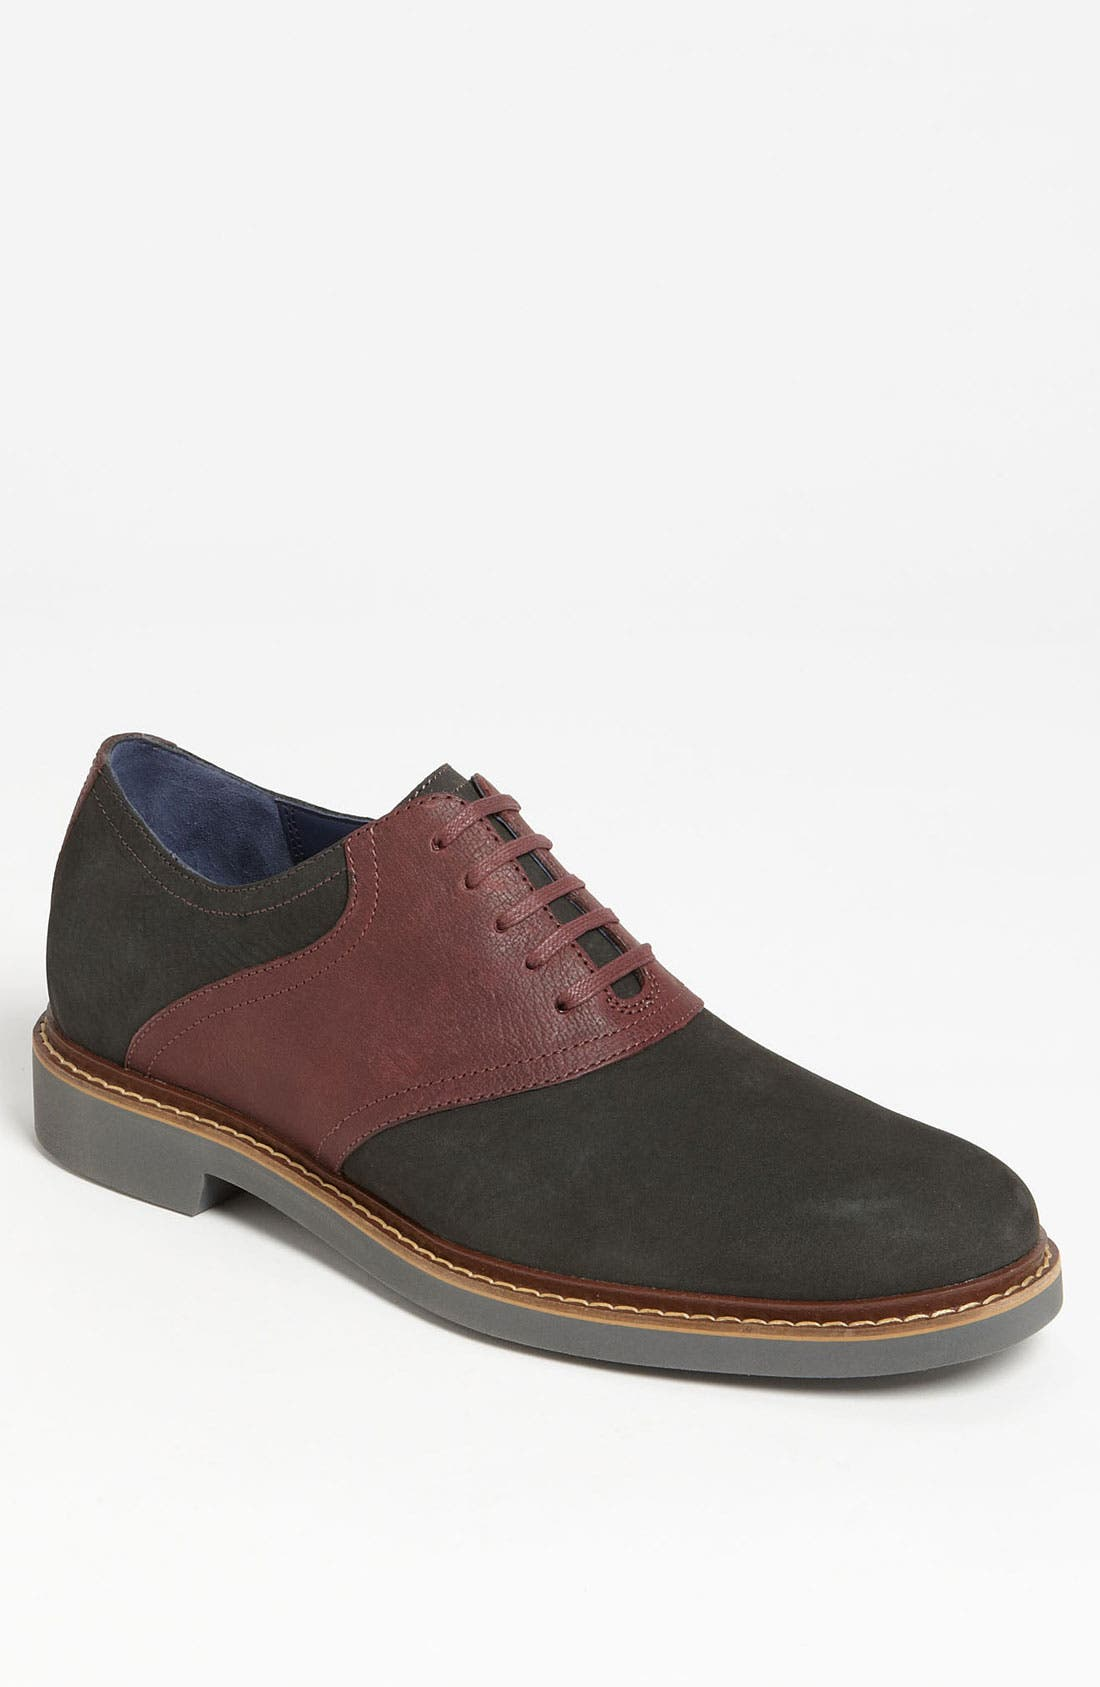 Alternate Image 1 Selected - Cole Haan 'Air Harrison' Saddle Shoe